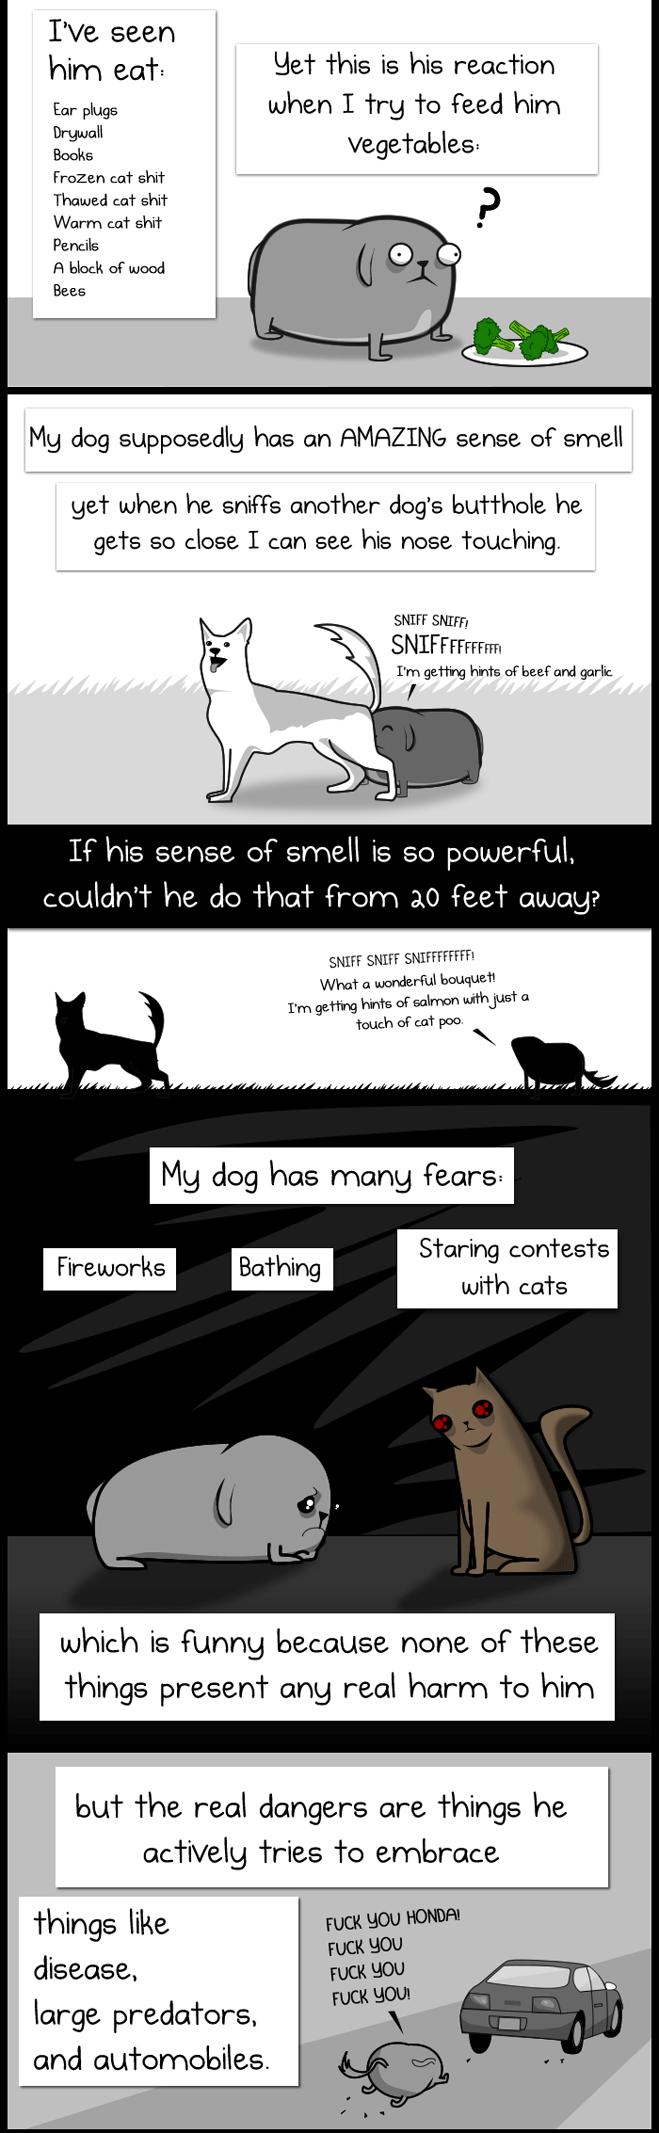 My Dog: The Paradox